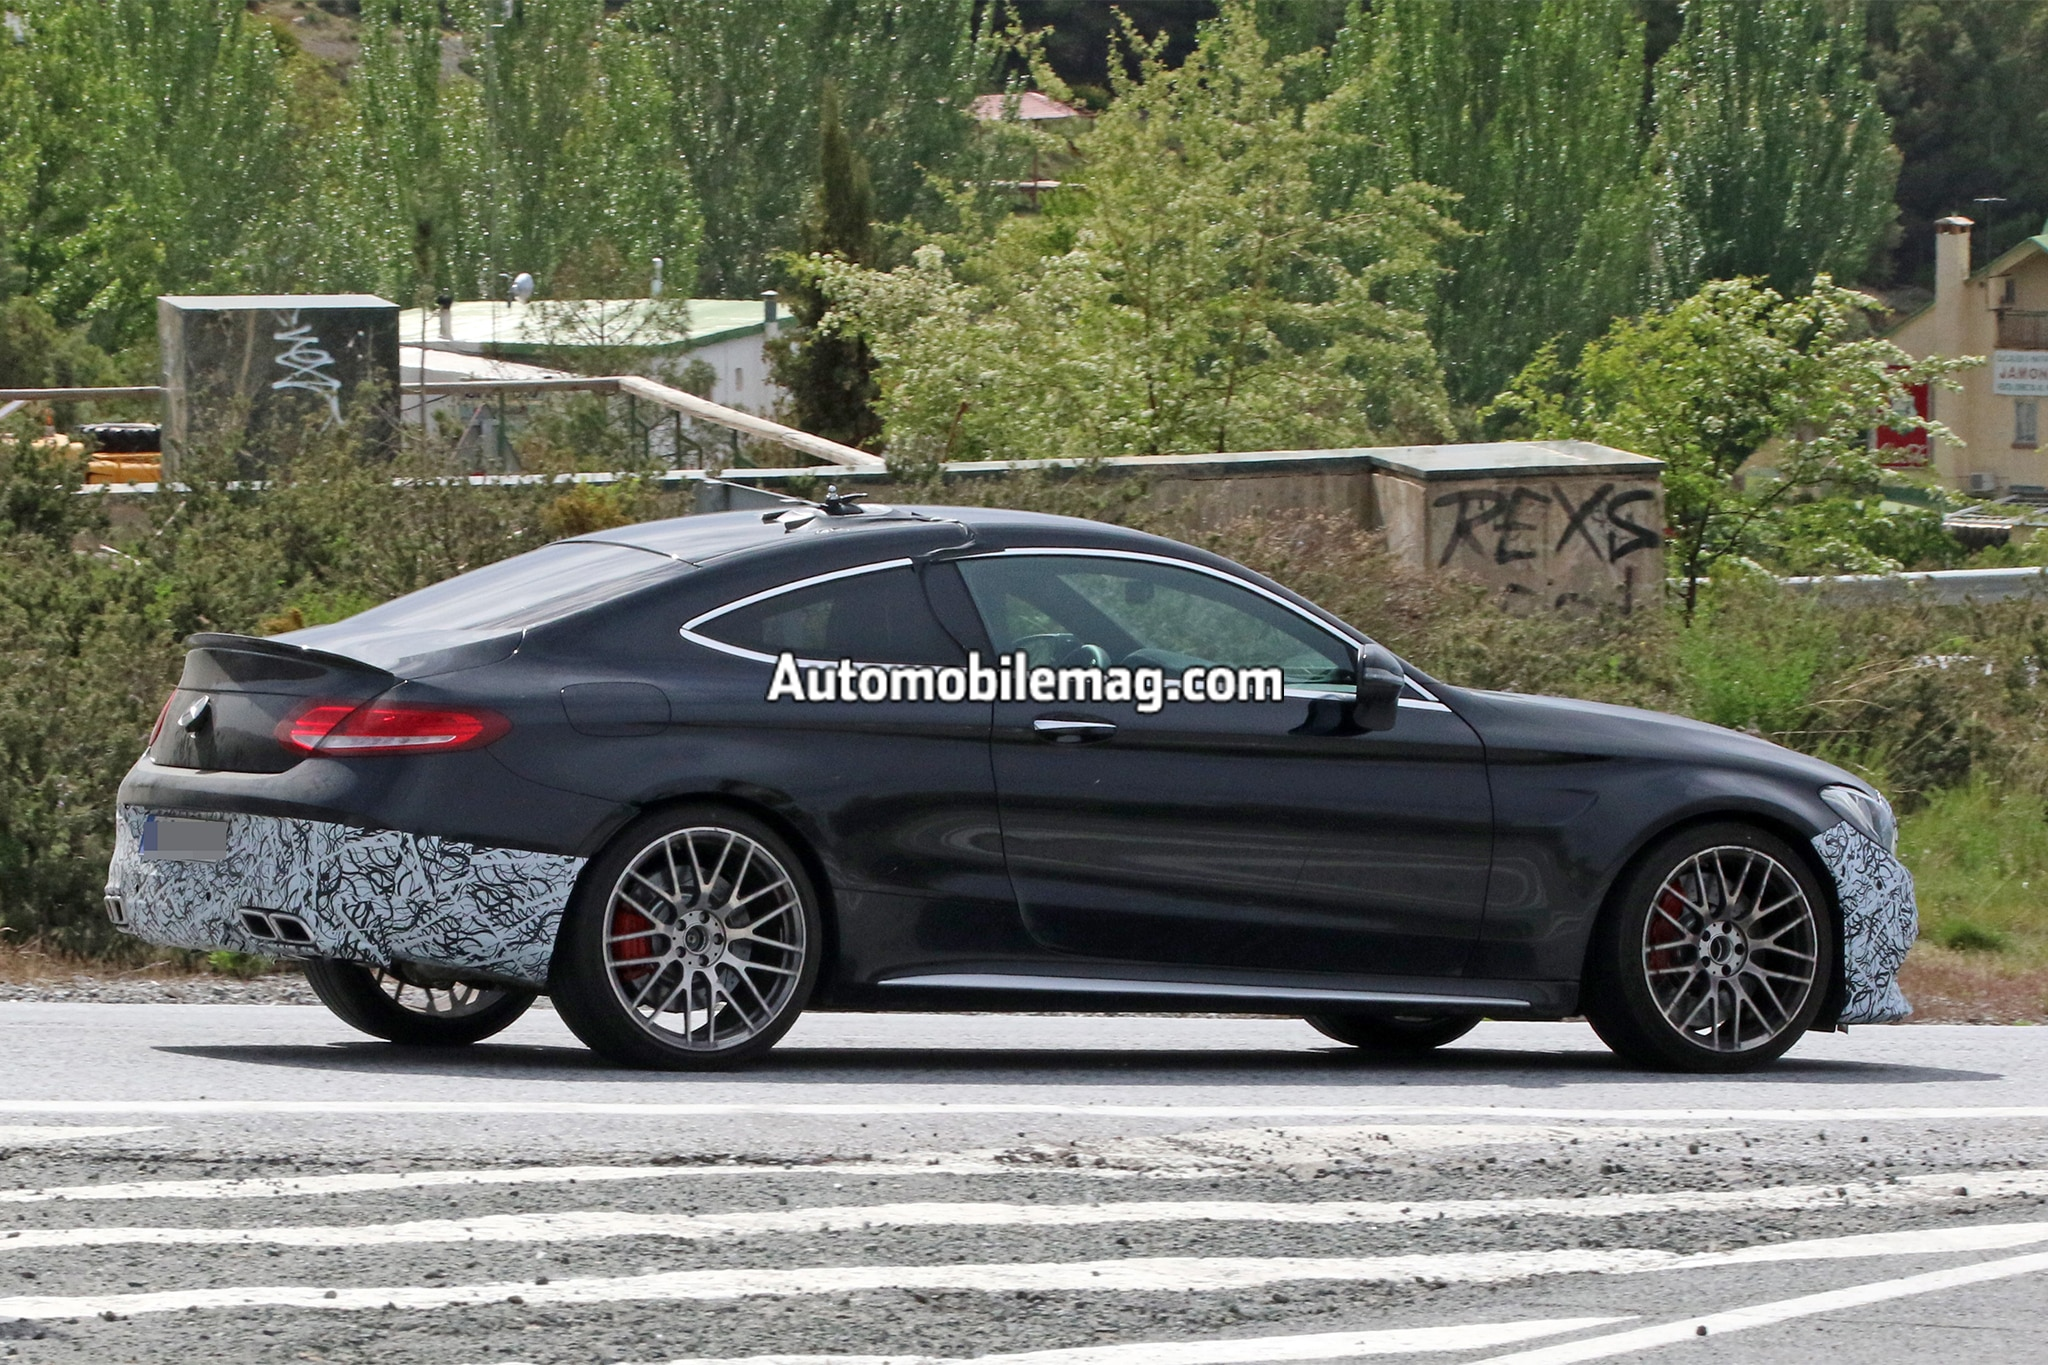 mercedes amg c63 s coupe set to get new nose and rear. Black Bedroom Furniture Sets. Home Design Ideas